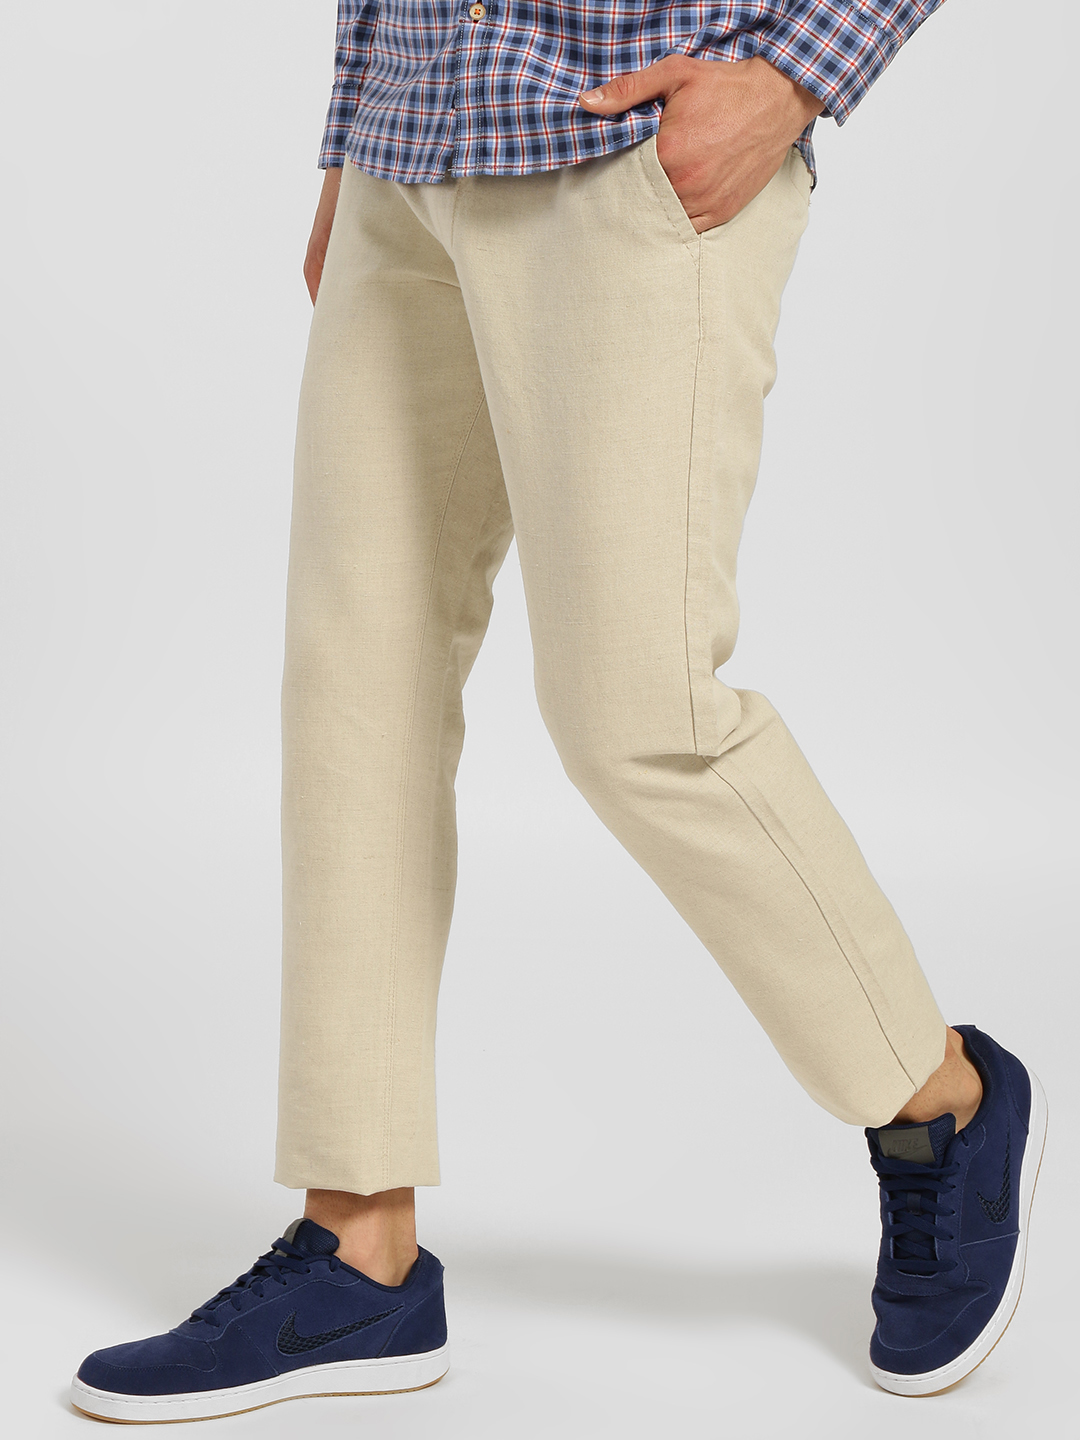 SCULLERS Green Textured Slim Fit Trousers 1